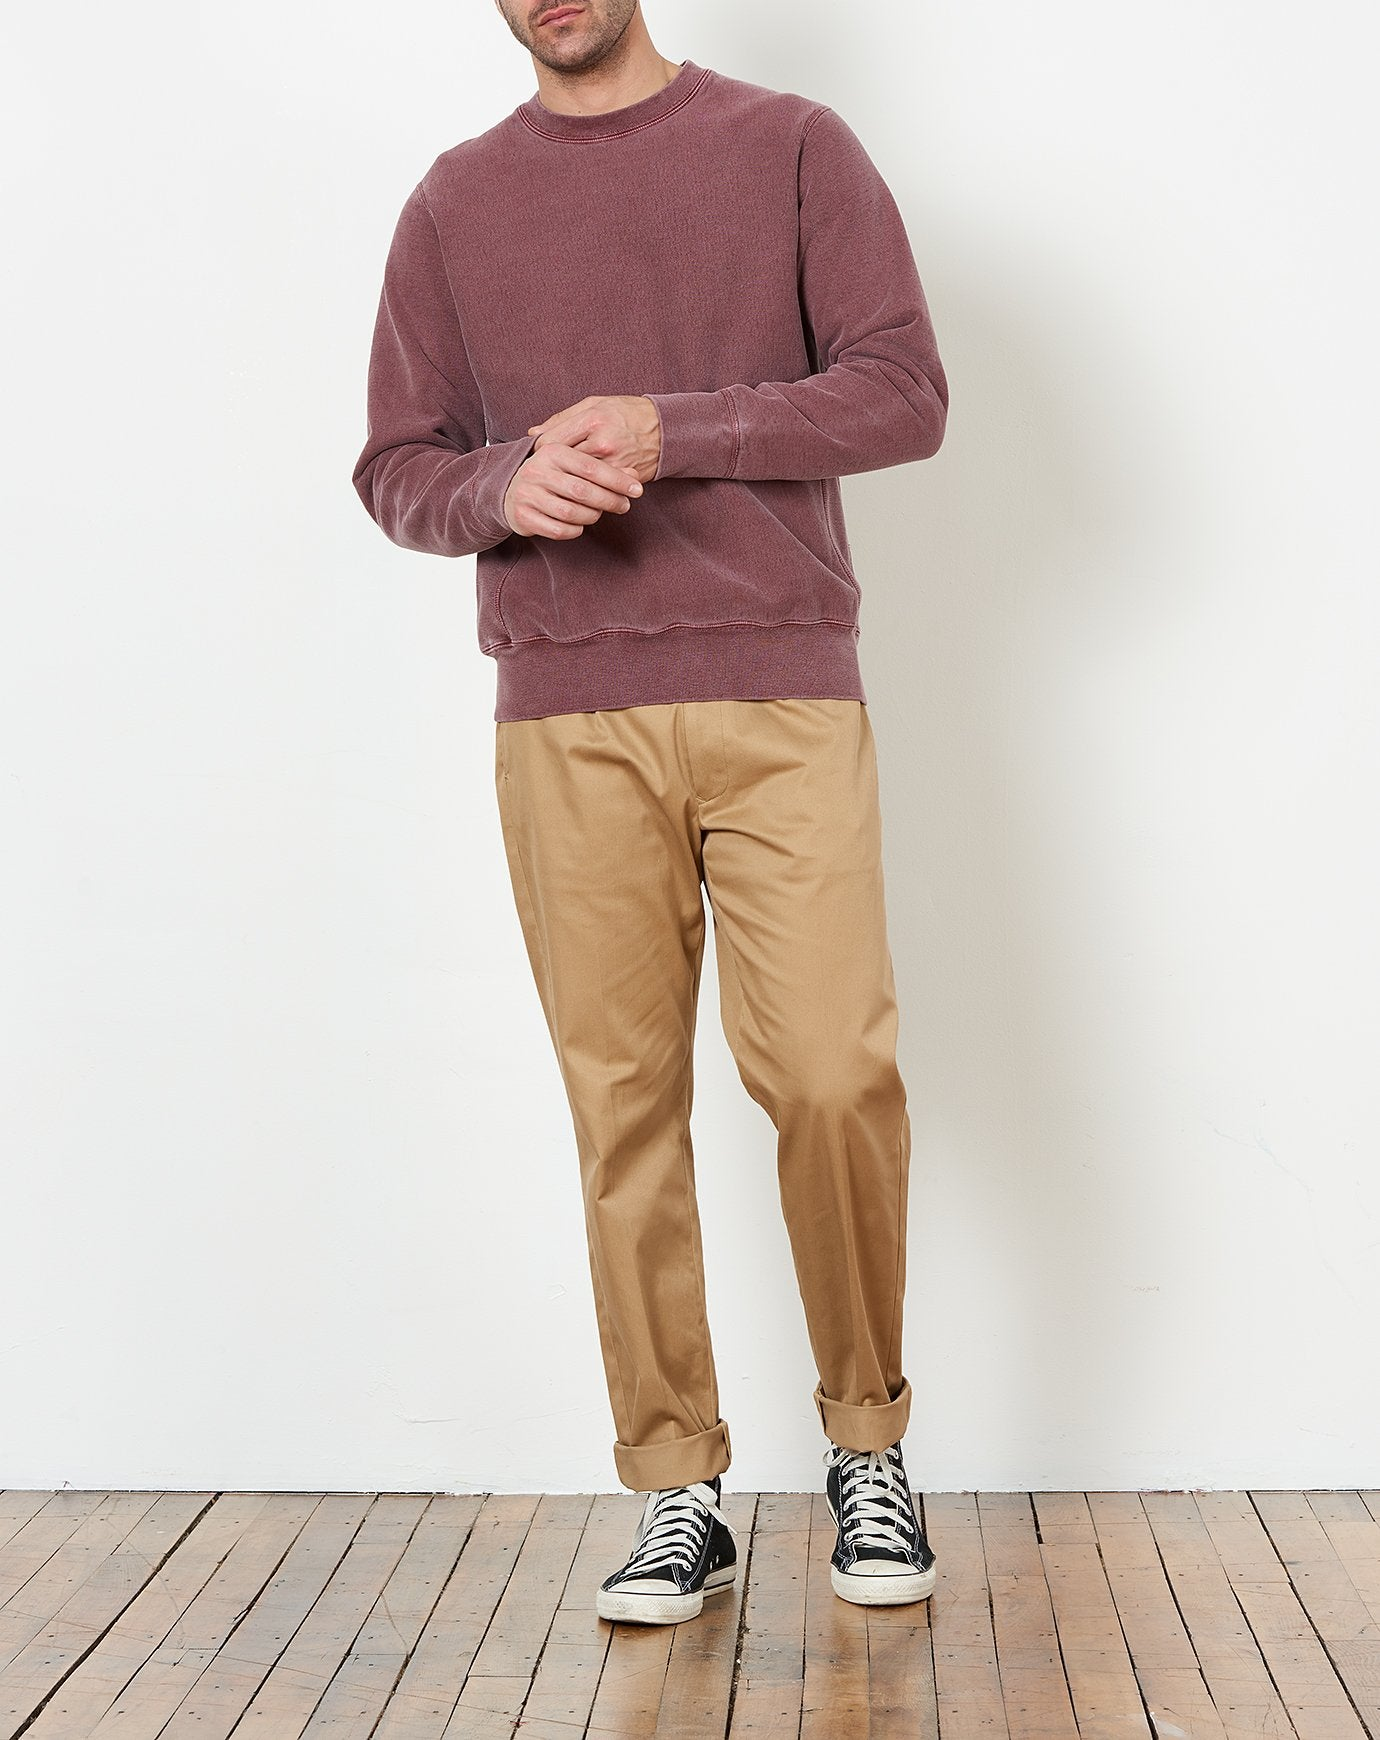 Crewneck Sweatshirt in Burgundy